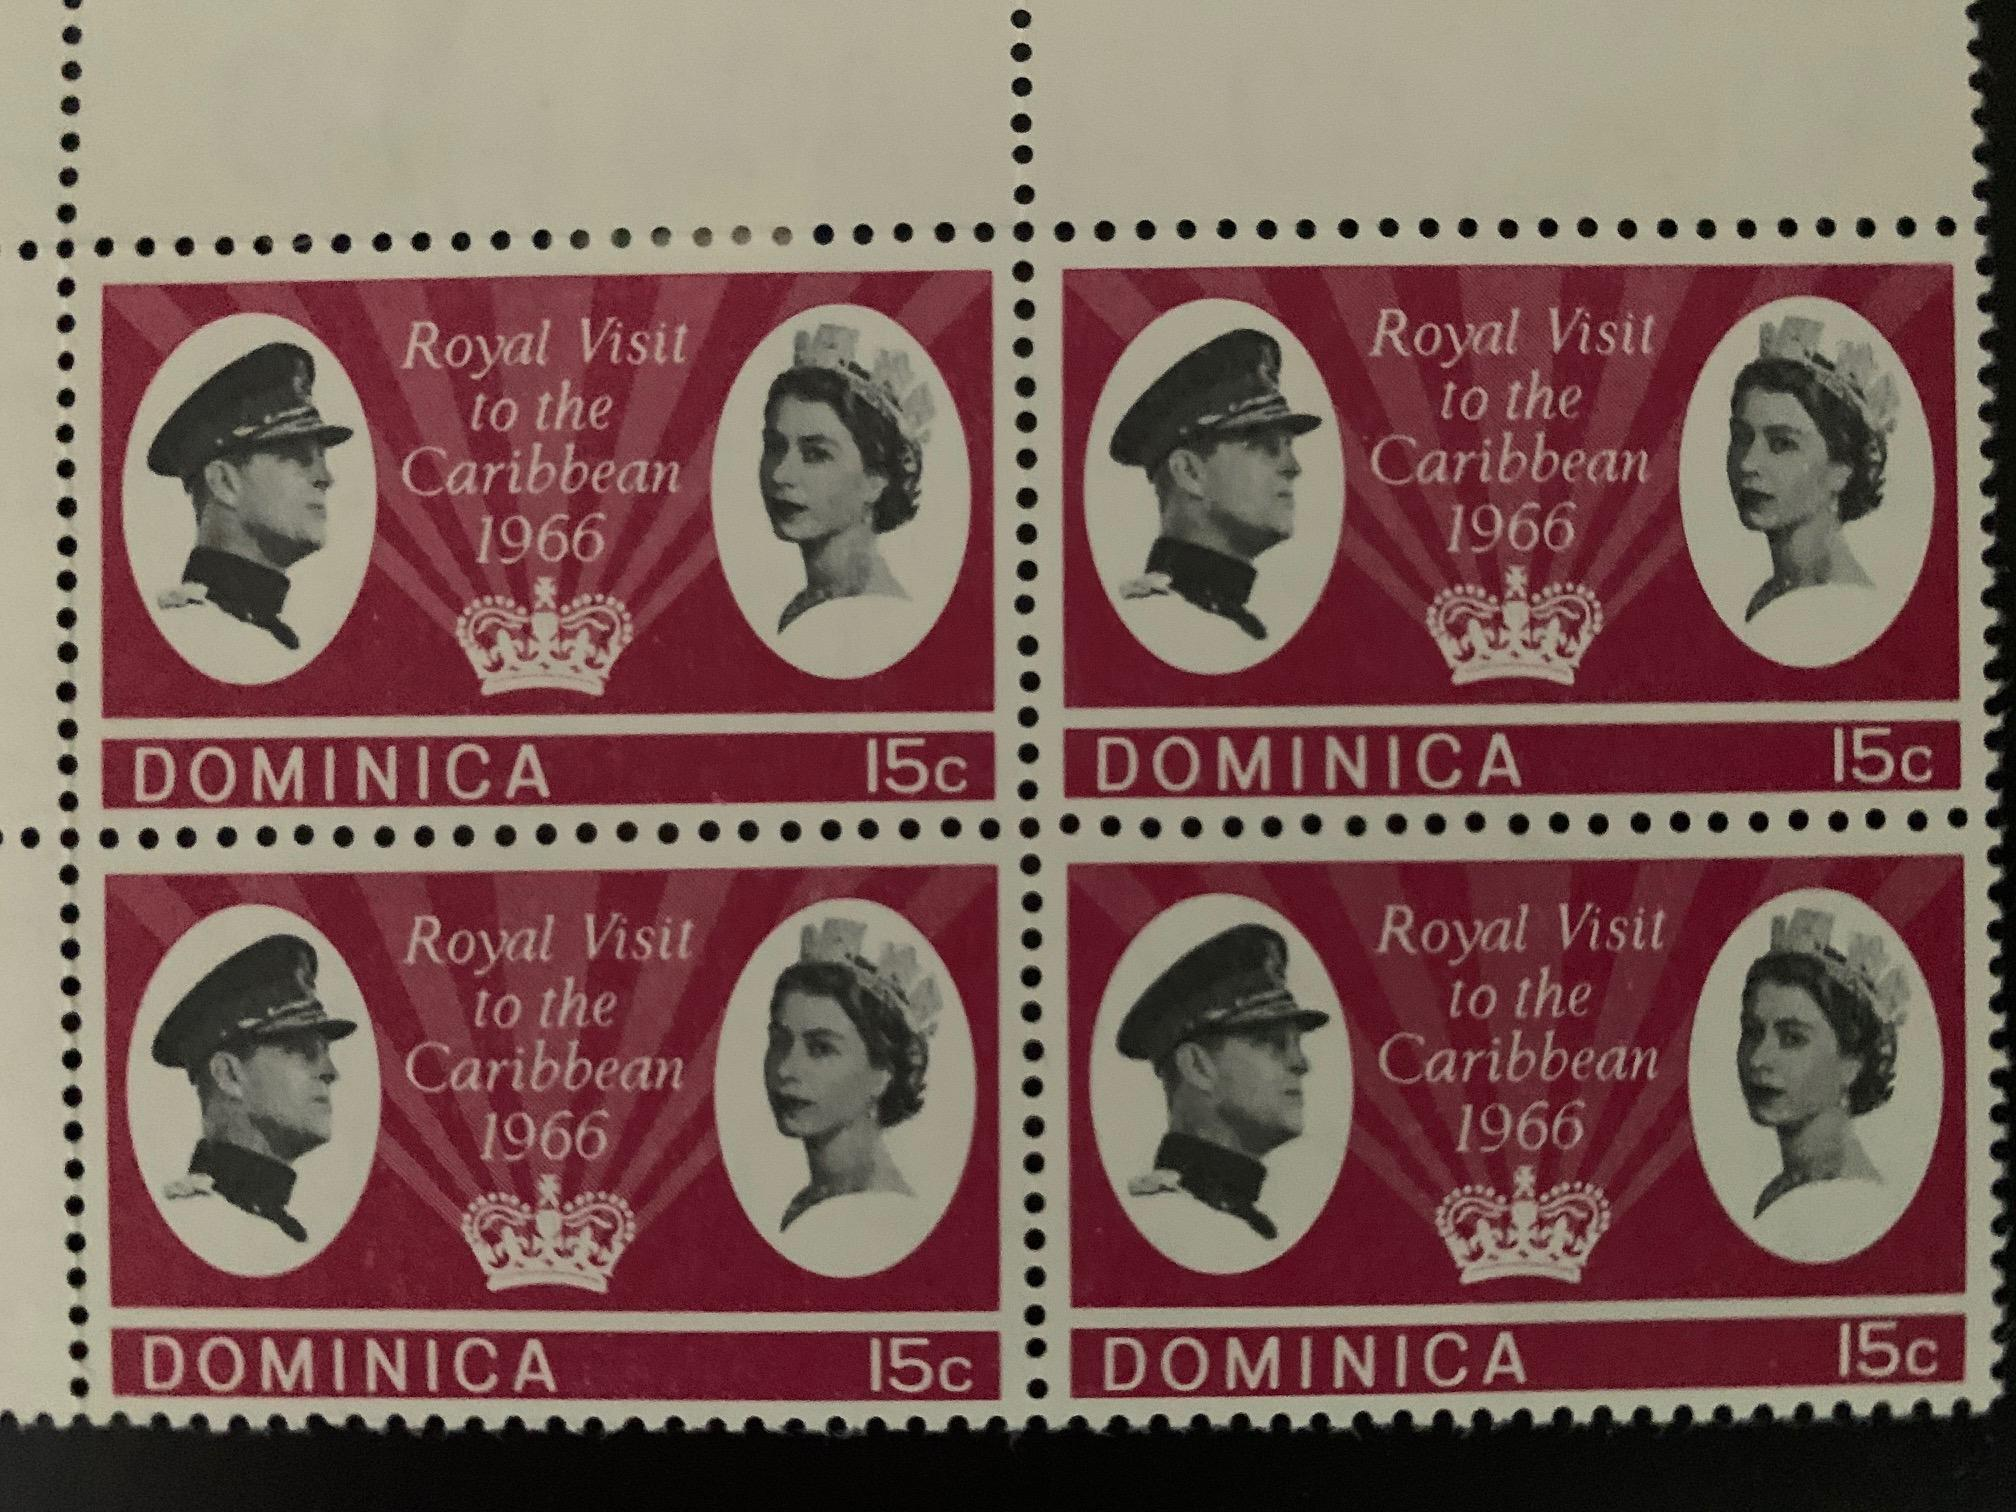 Dominica 1966 Royal Visit stamp - block of 4